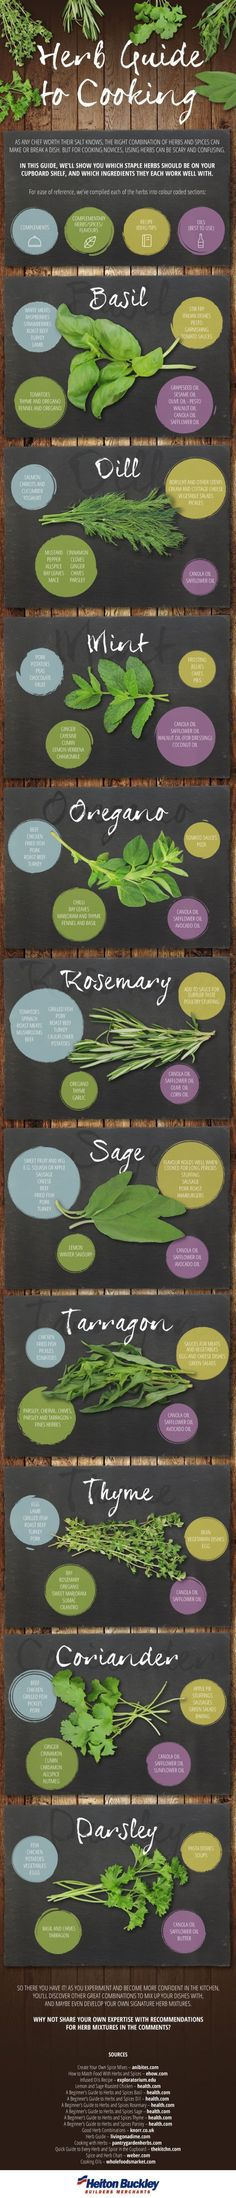 Viance Nutrition | Try cooking with these herbs! | www.viance.com | #viancenutrition #viance #healthyliving  #weight #weightloss